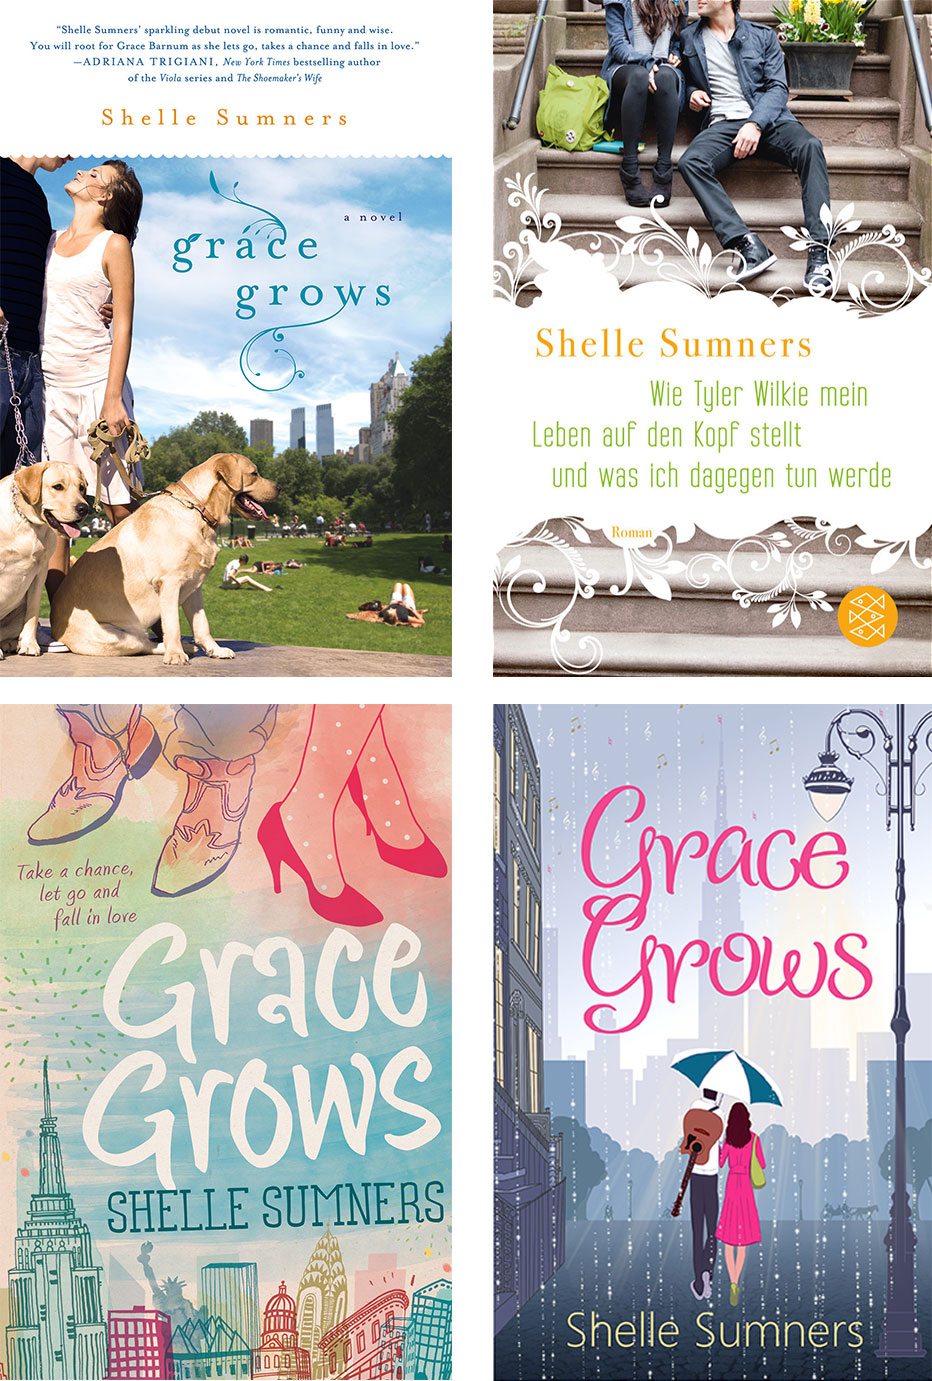 Cover image of Grace Grows by Shelle Sumners